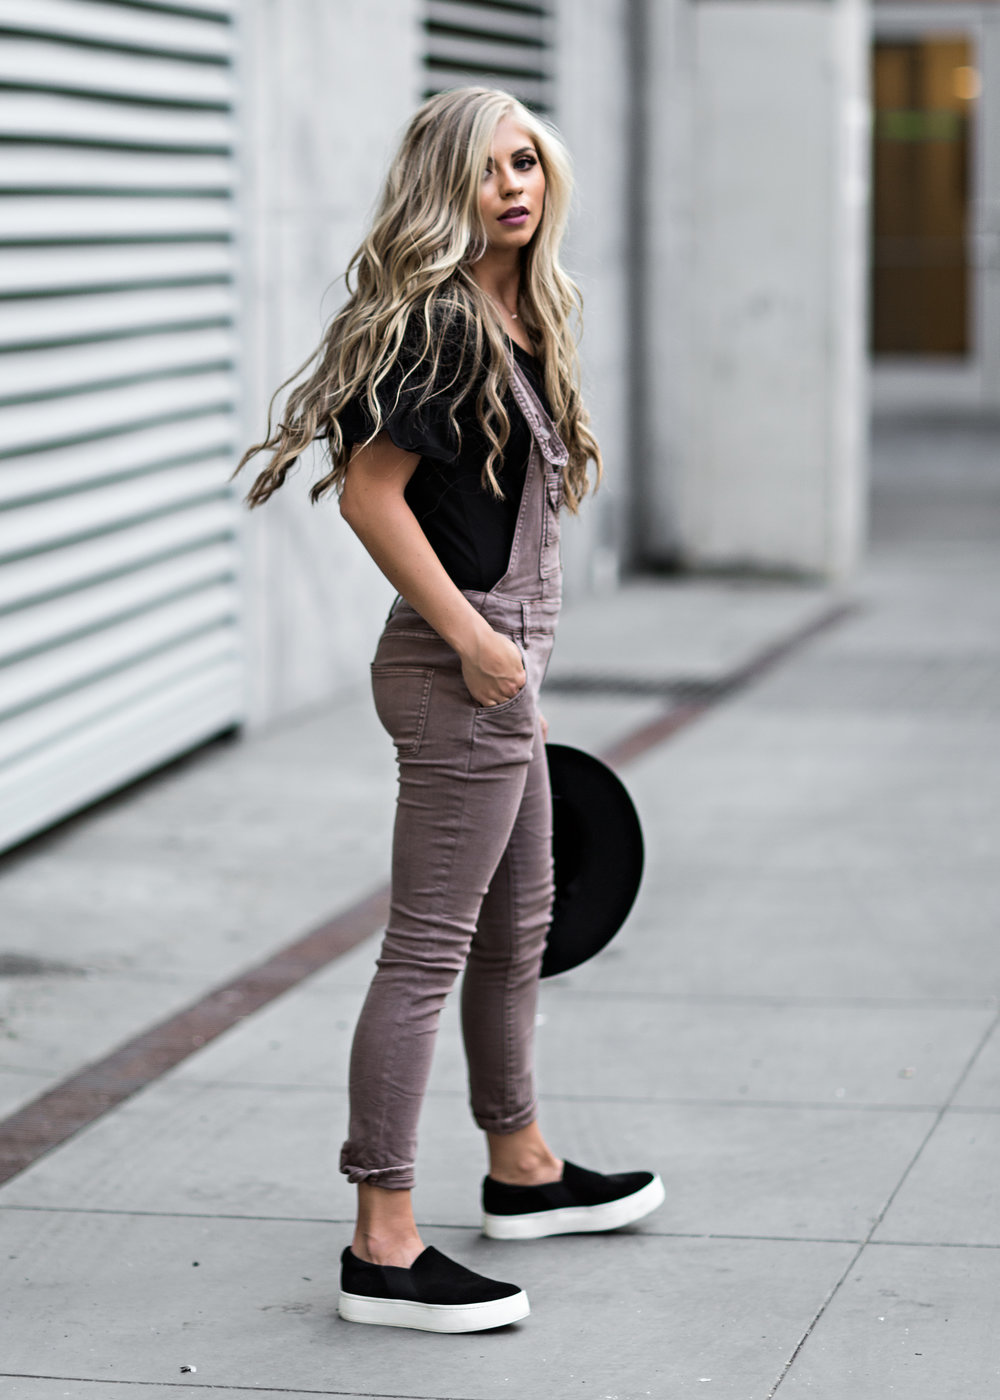 overalls, jessakae, blonde, hair, style, fashion, ootd, sneakers, fall fashion, makeup